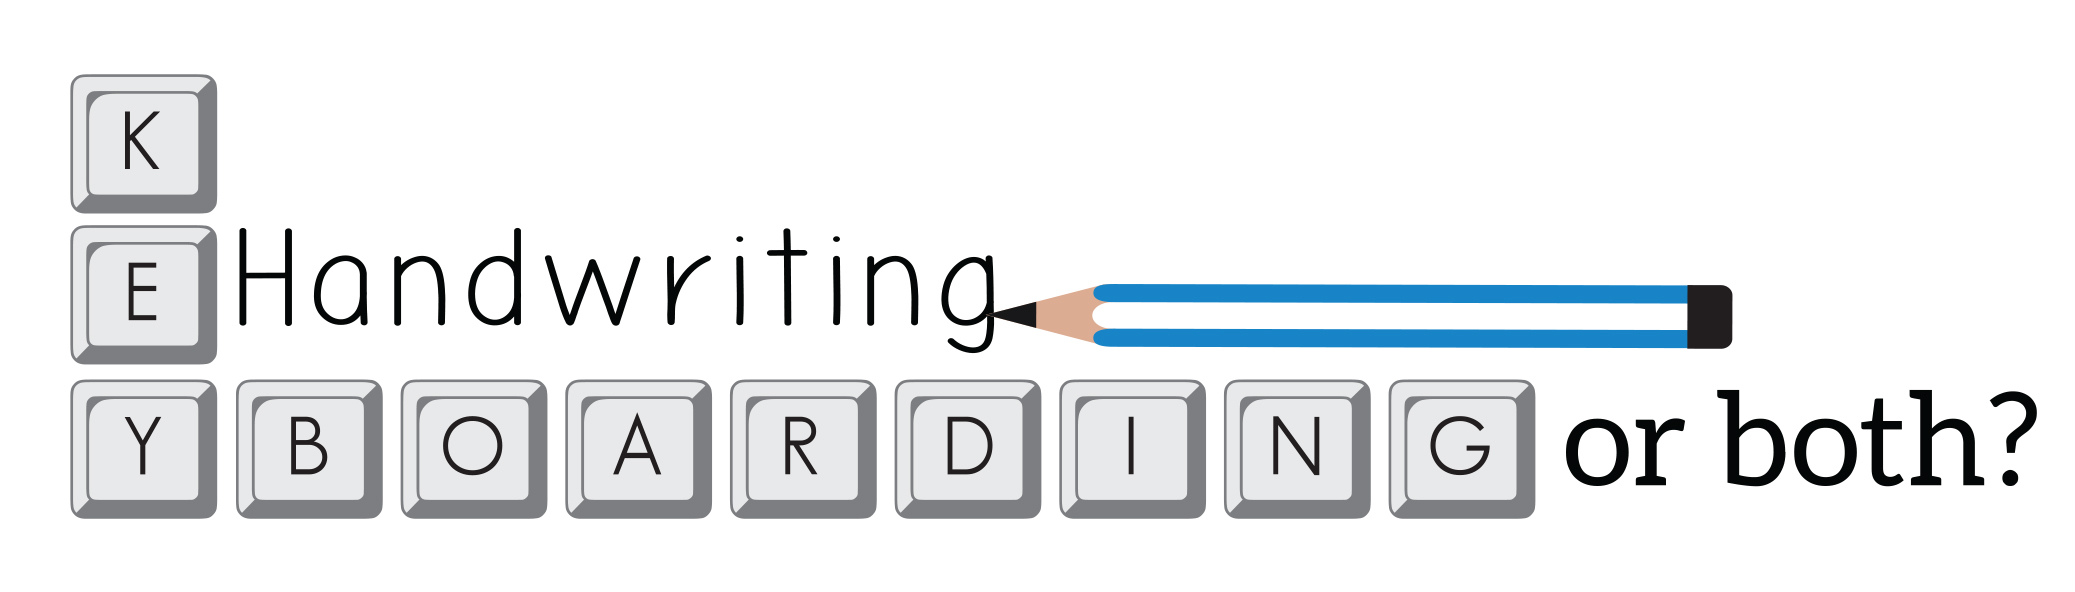 Keyboarding, handwriting or both for 21st century learning?